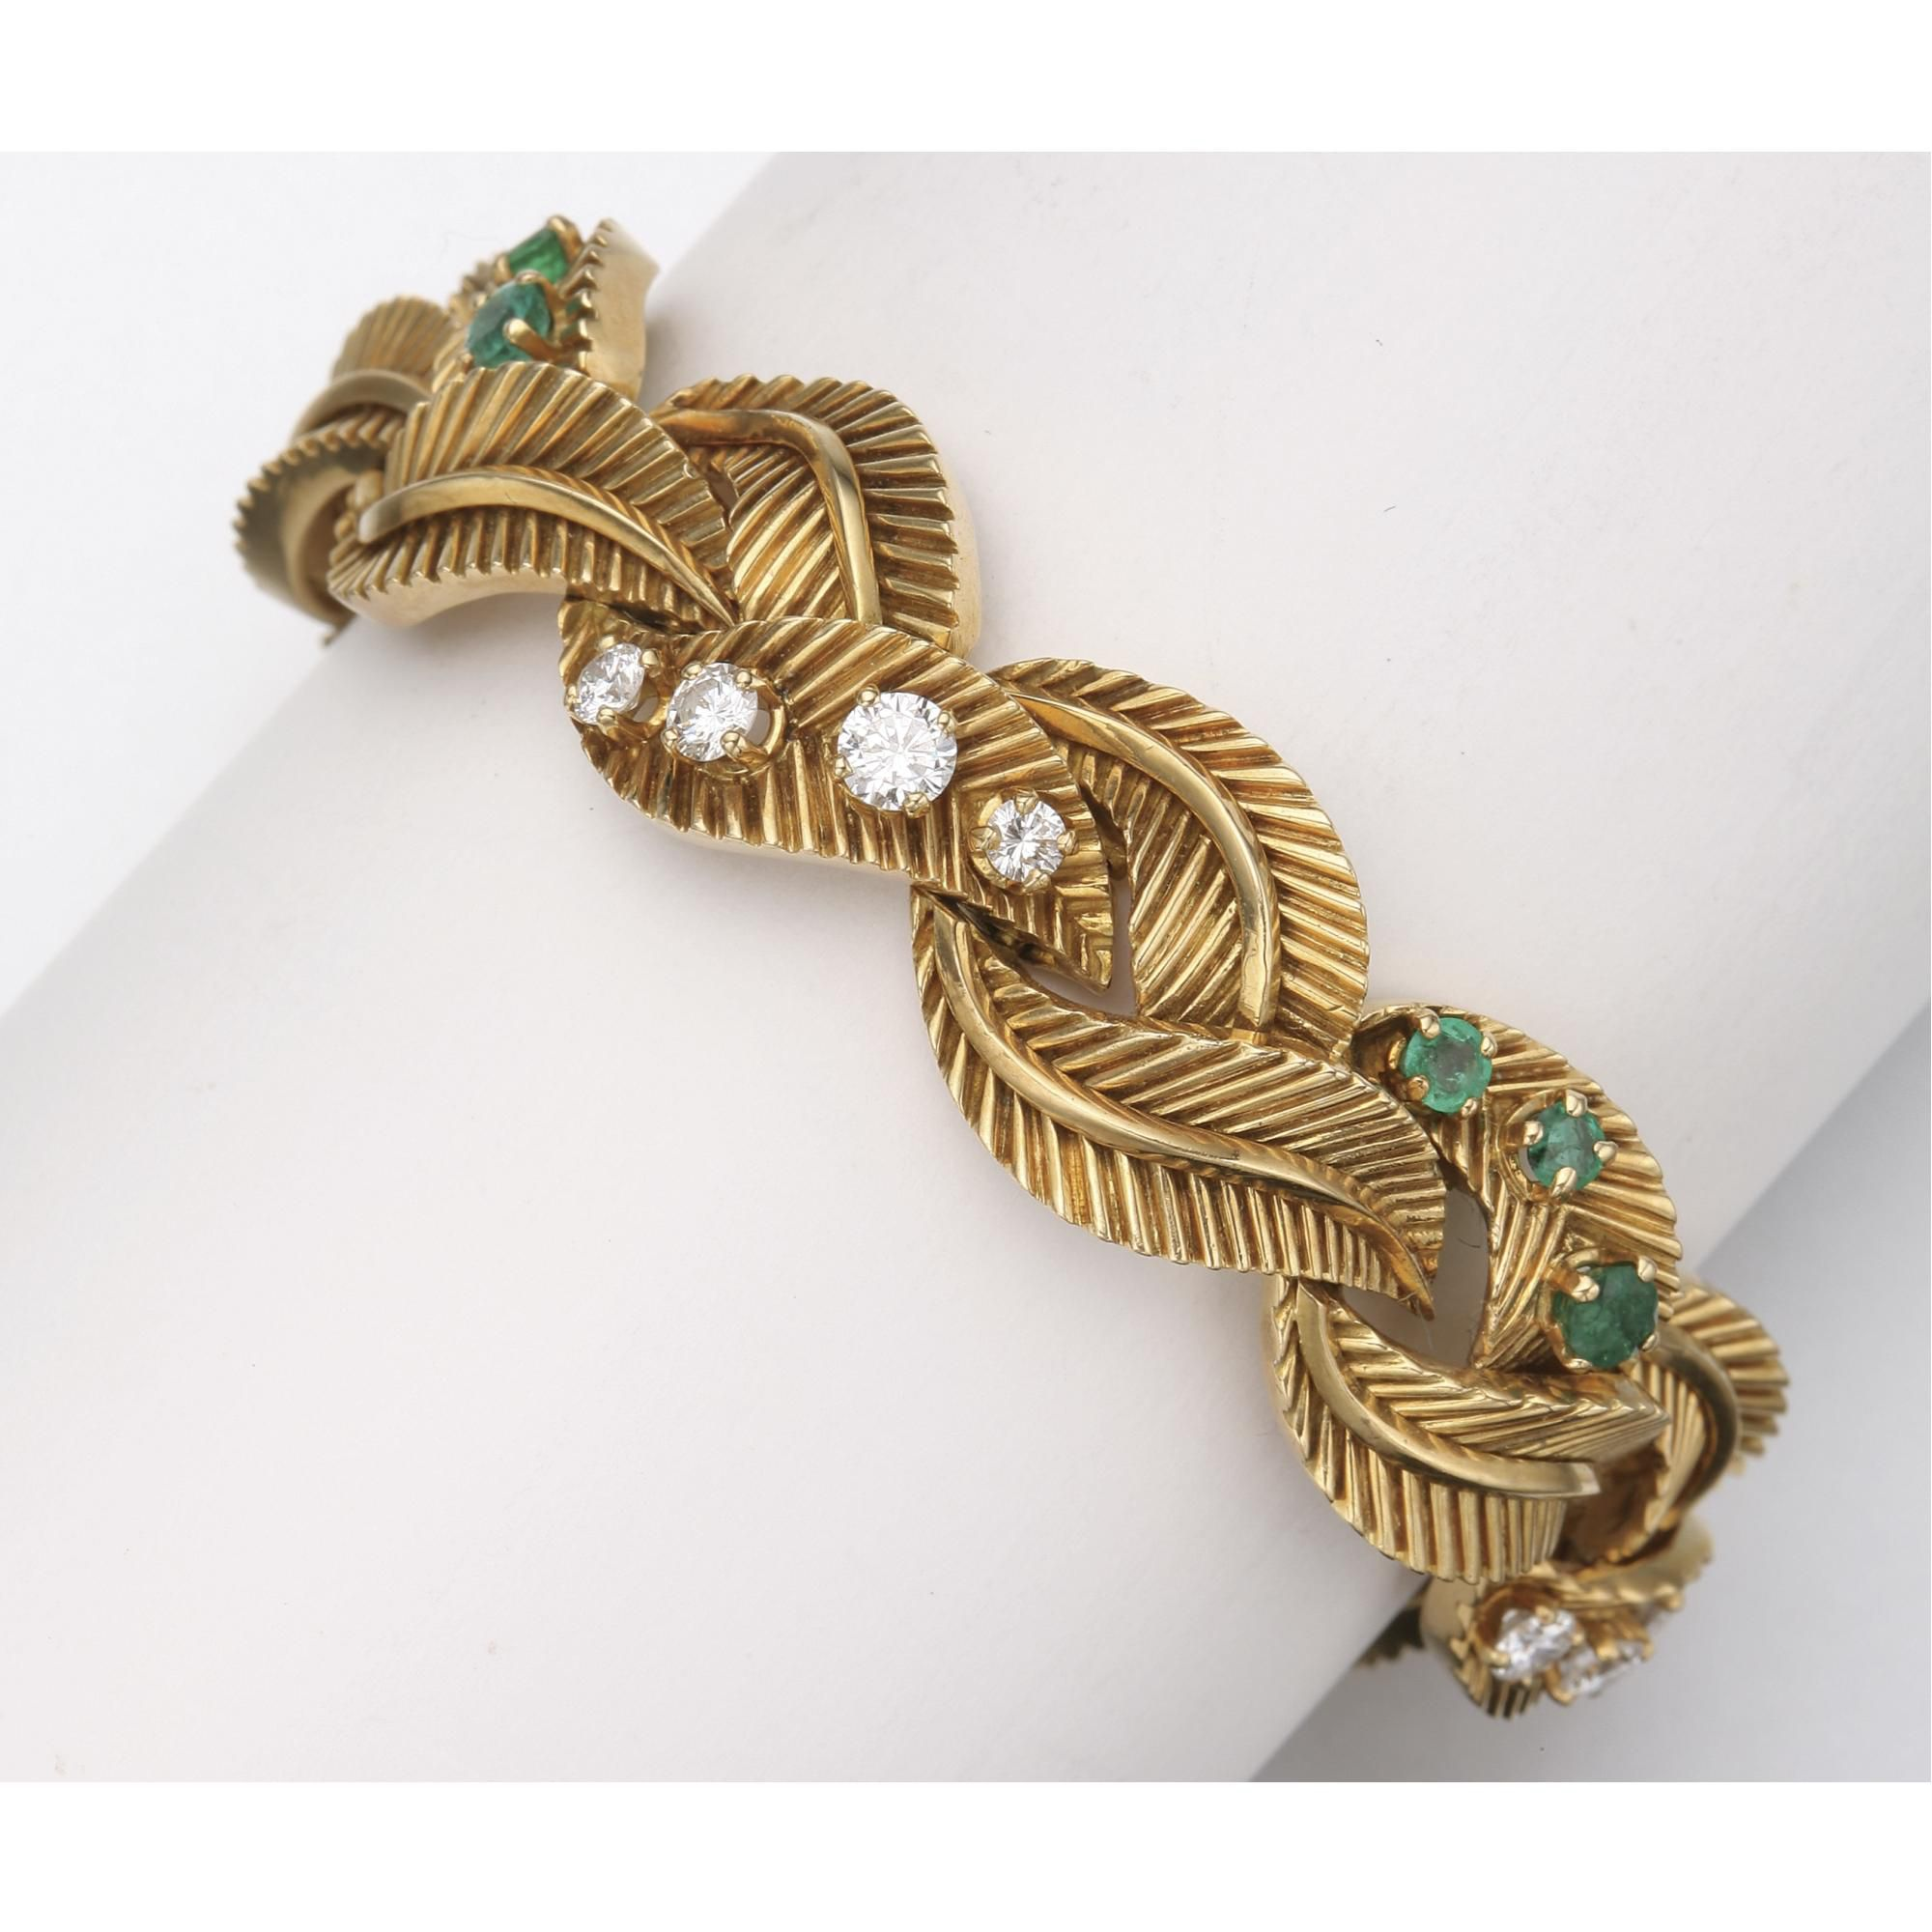 Gold diamond and emerald bracelet van cleef u arpels france